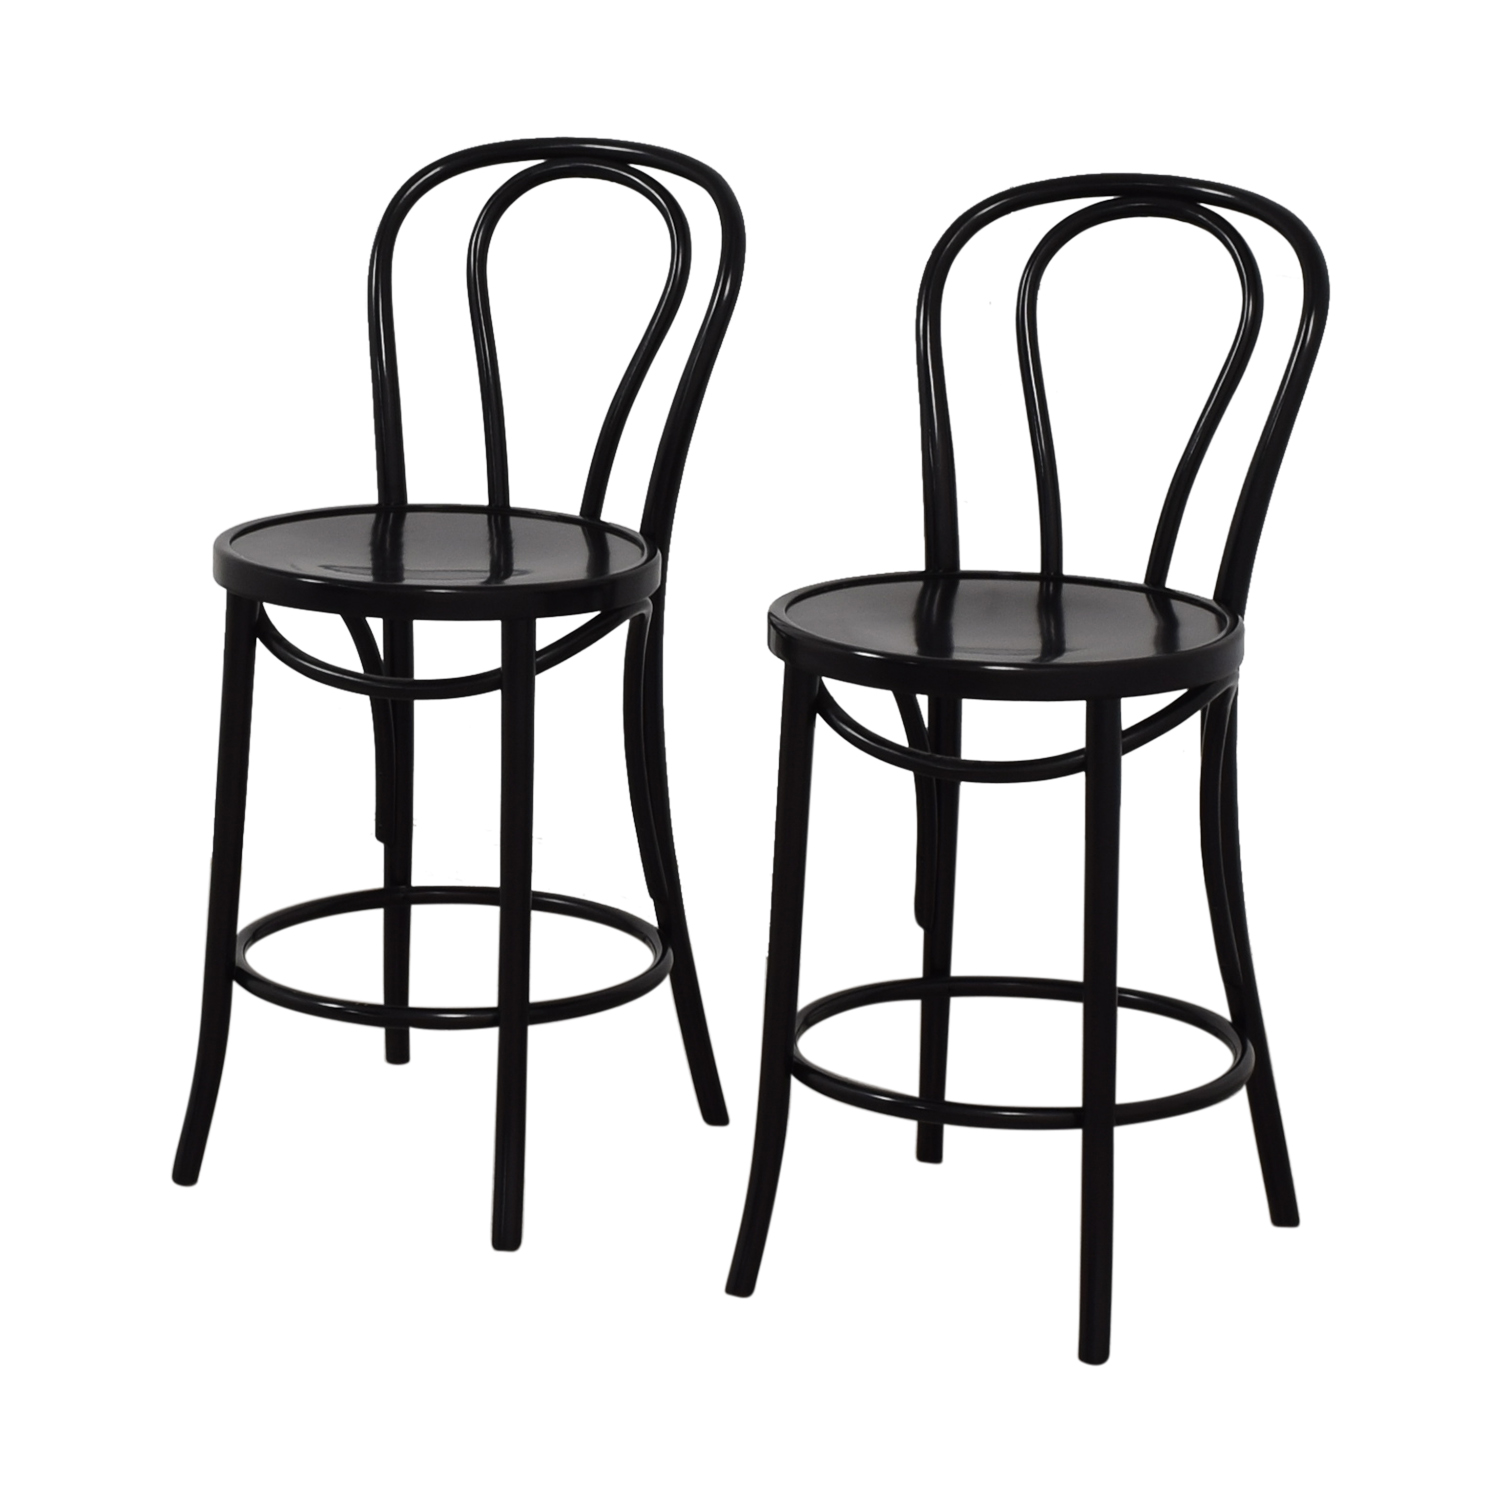 Crate & Barrel Crate & Barrel Vienna Black Counter Stools Chairs